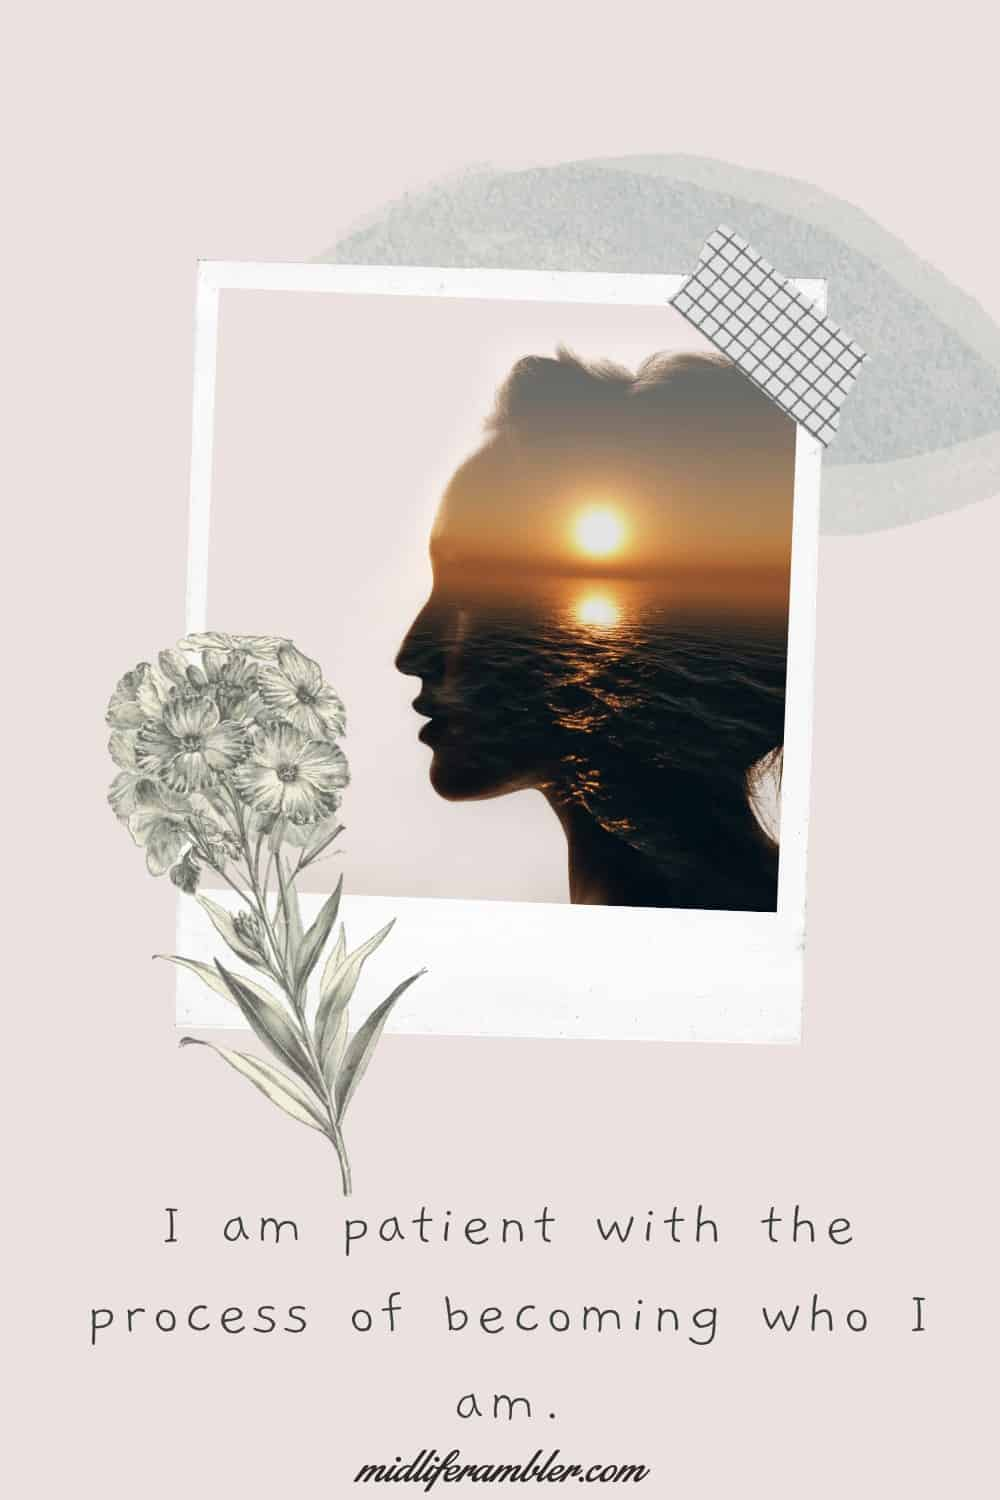 Affirmations for Self-Compassion - I am patient with the process of becoming who I am.